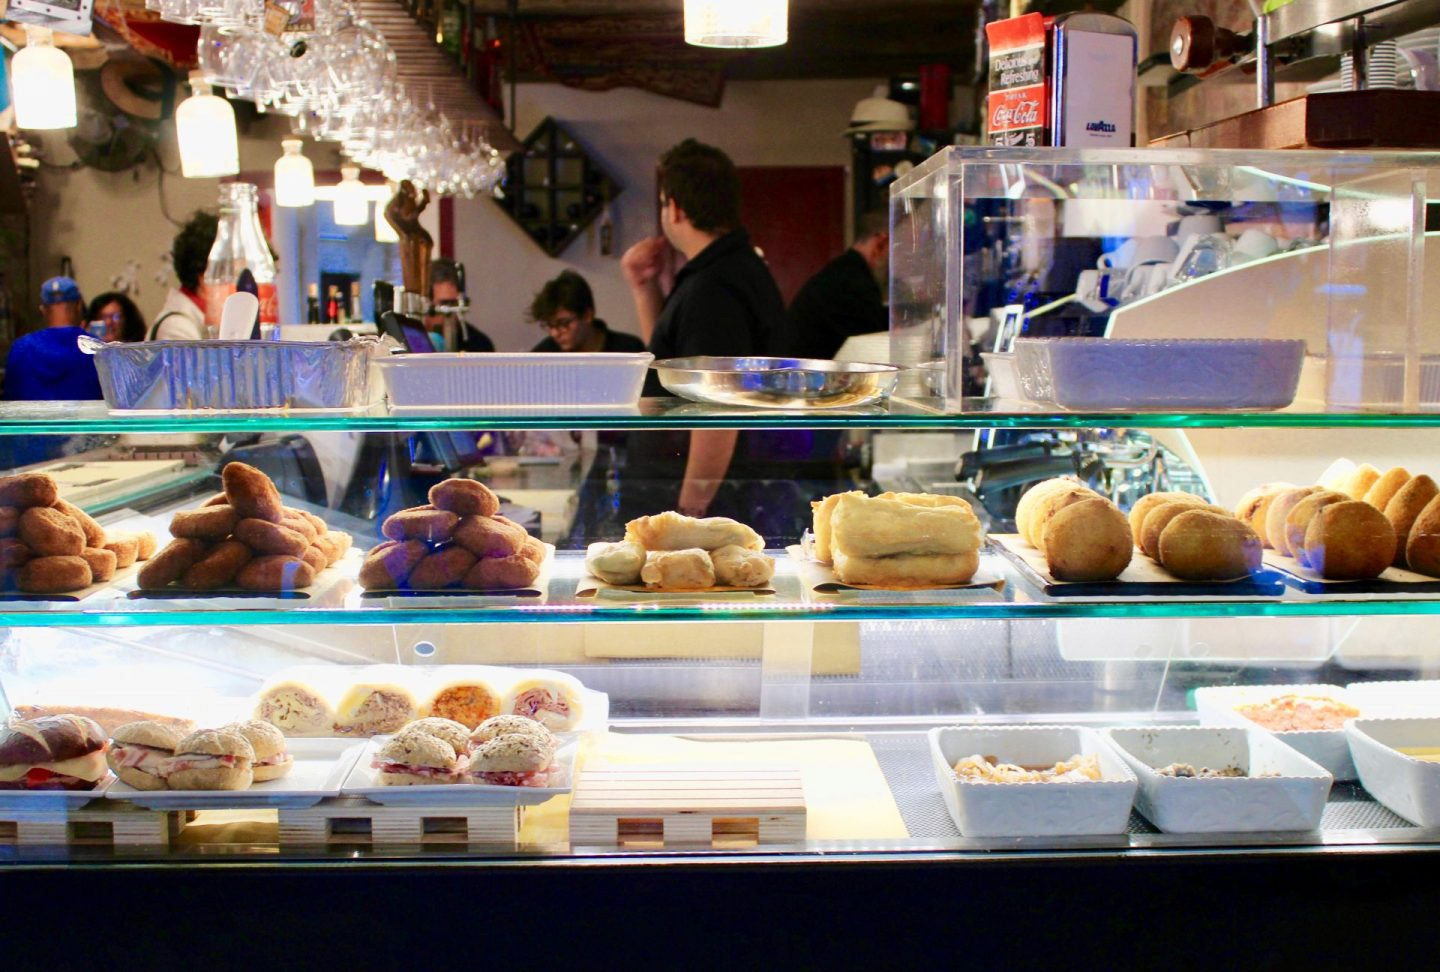 best cicchetti in Venice: a cicchetti bar with a wide range of food displayed behind a glass counter